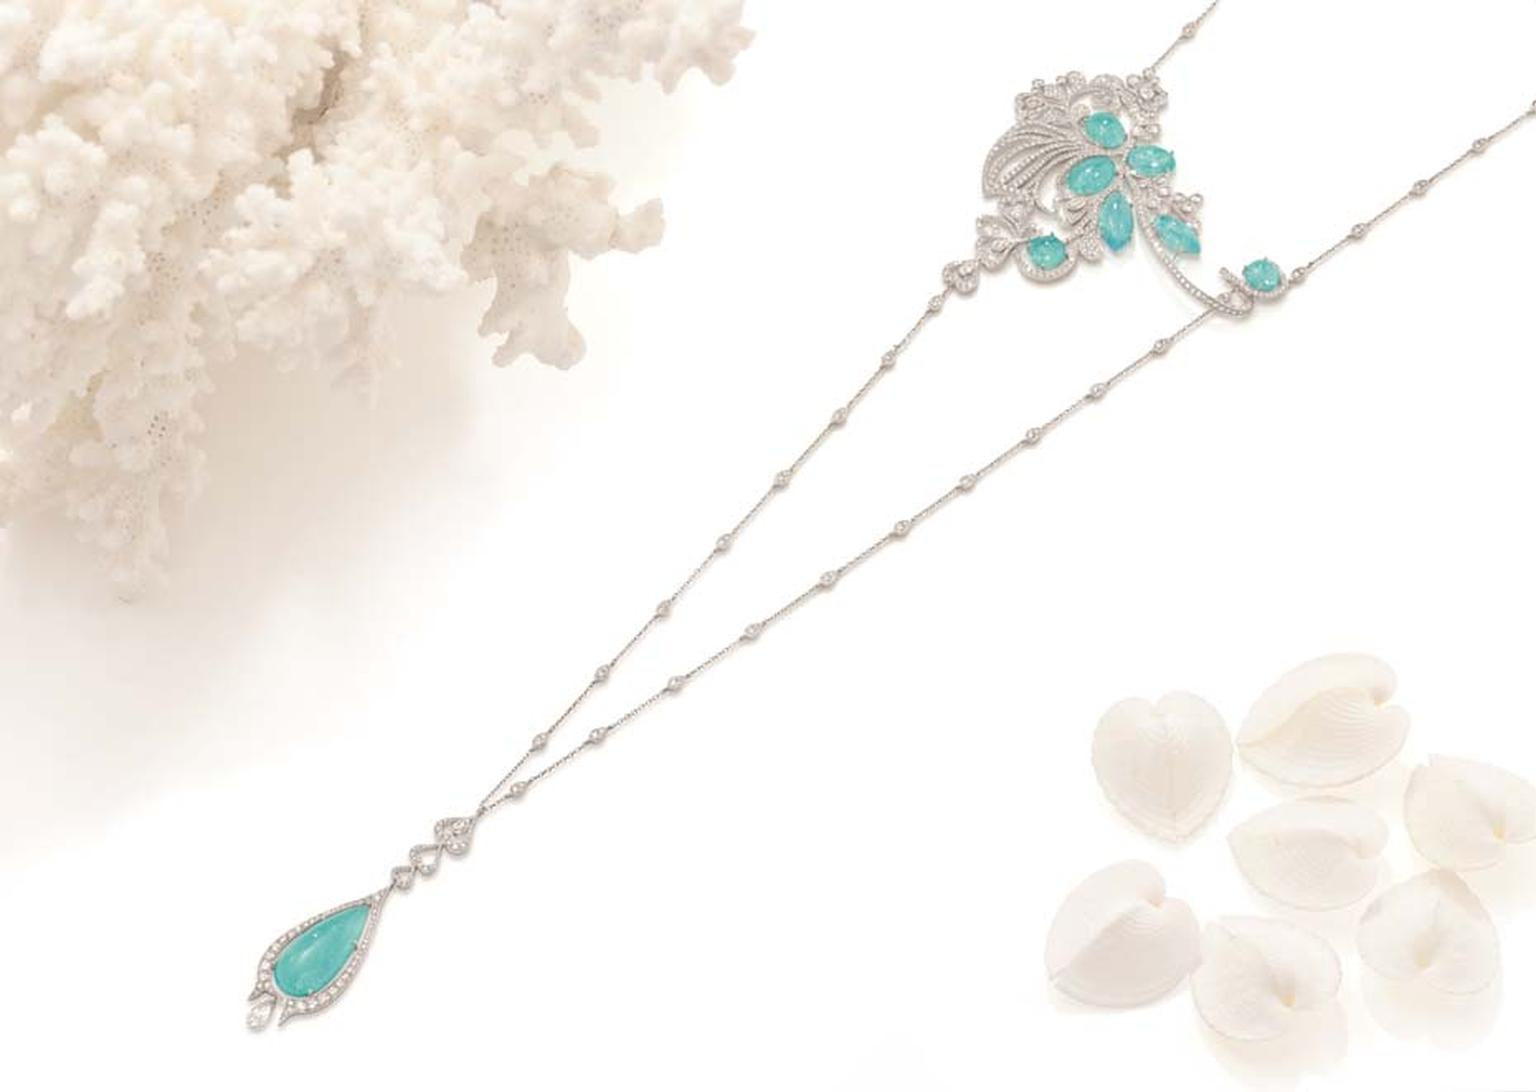 Boodles Atlantic Blue necklace with Paraiba tourmalines and diamonds, from the new 'Ocean of Dreams' collection.